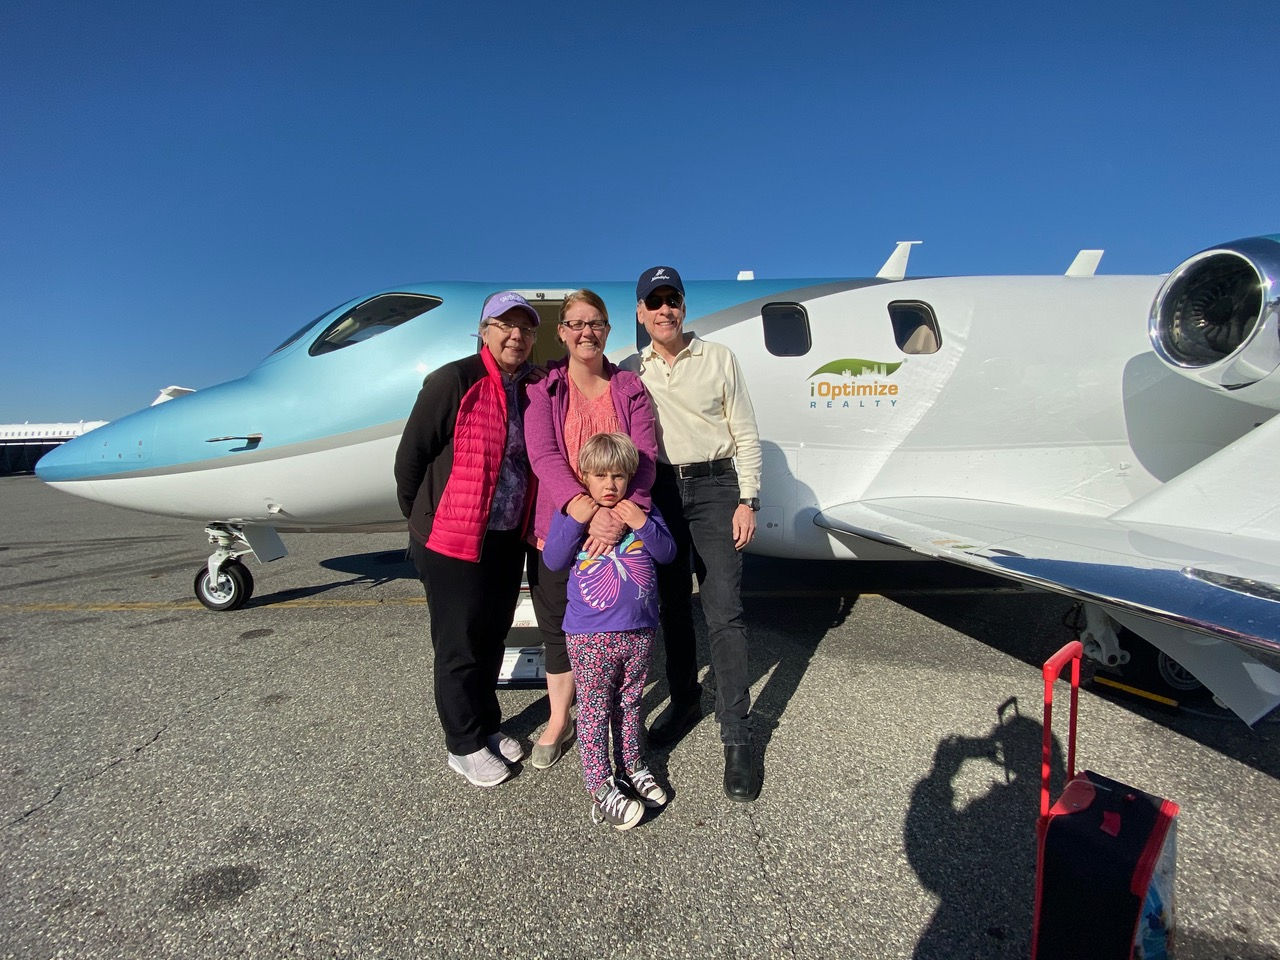 To Canada, with love - iOptimize Realty® uses corporate jet for charity flight bringing Canadian patient home.